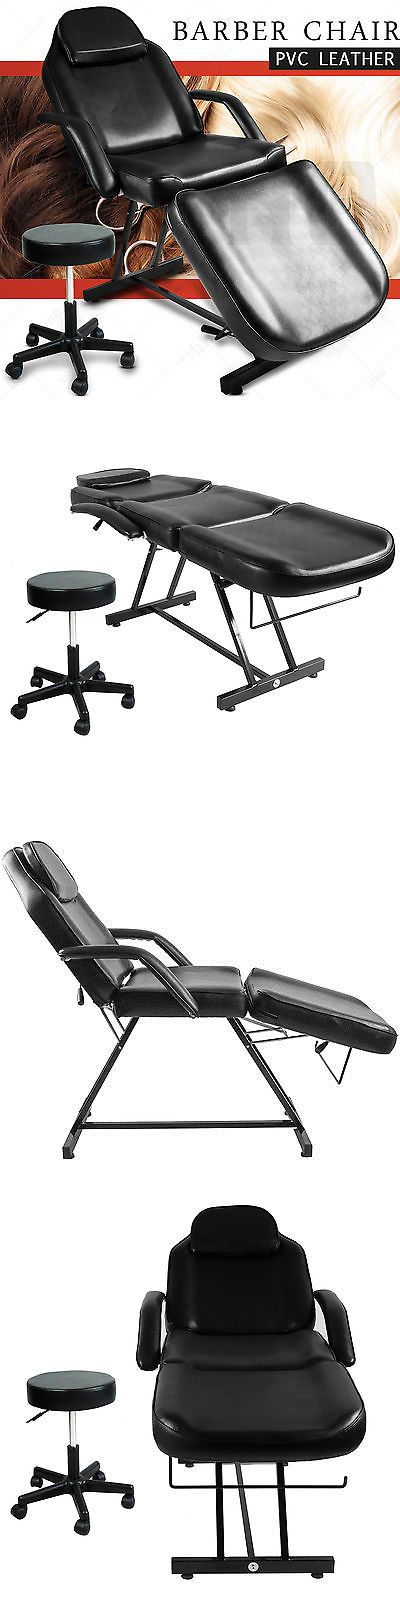 Stylist Stations and Furniture: Adjustable Massage Bed Chair Beauty Equipment Spa Tattoo Salon Hydraulic Stool -> BUY IT NOW ONLY: $149.99 on eBay!